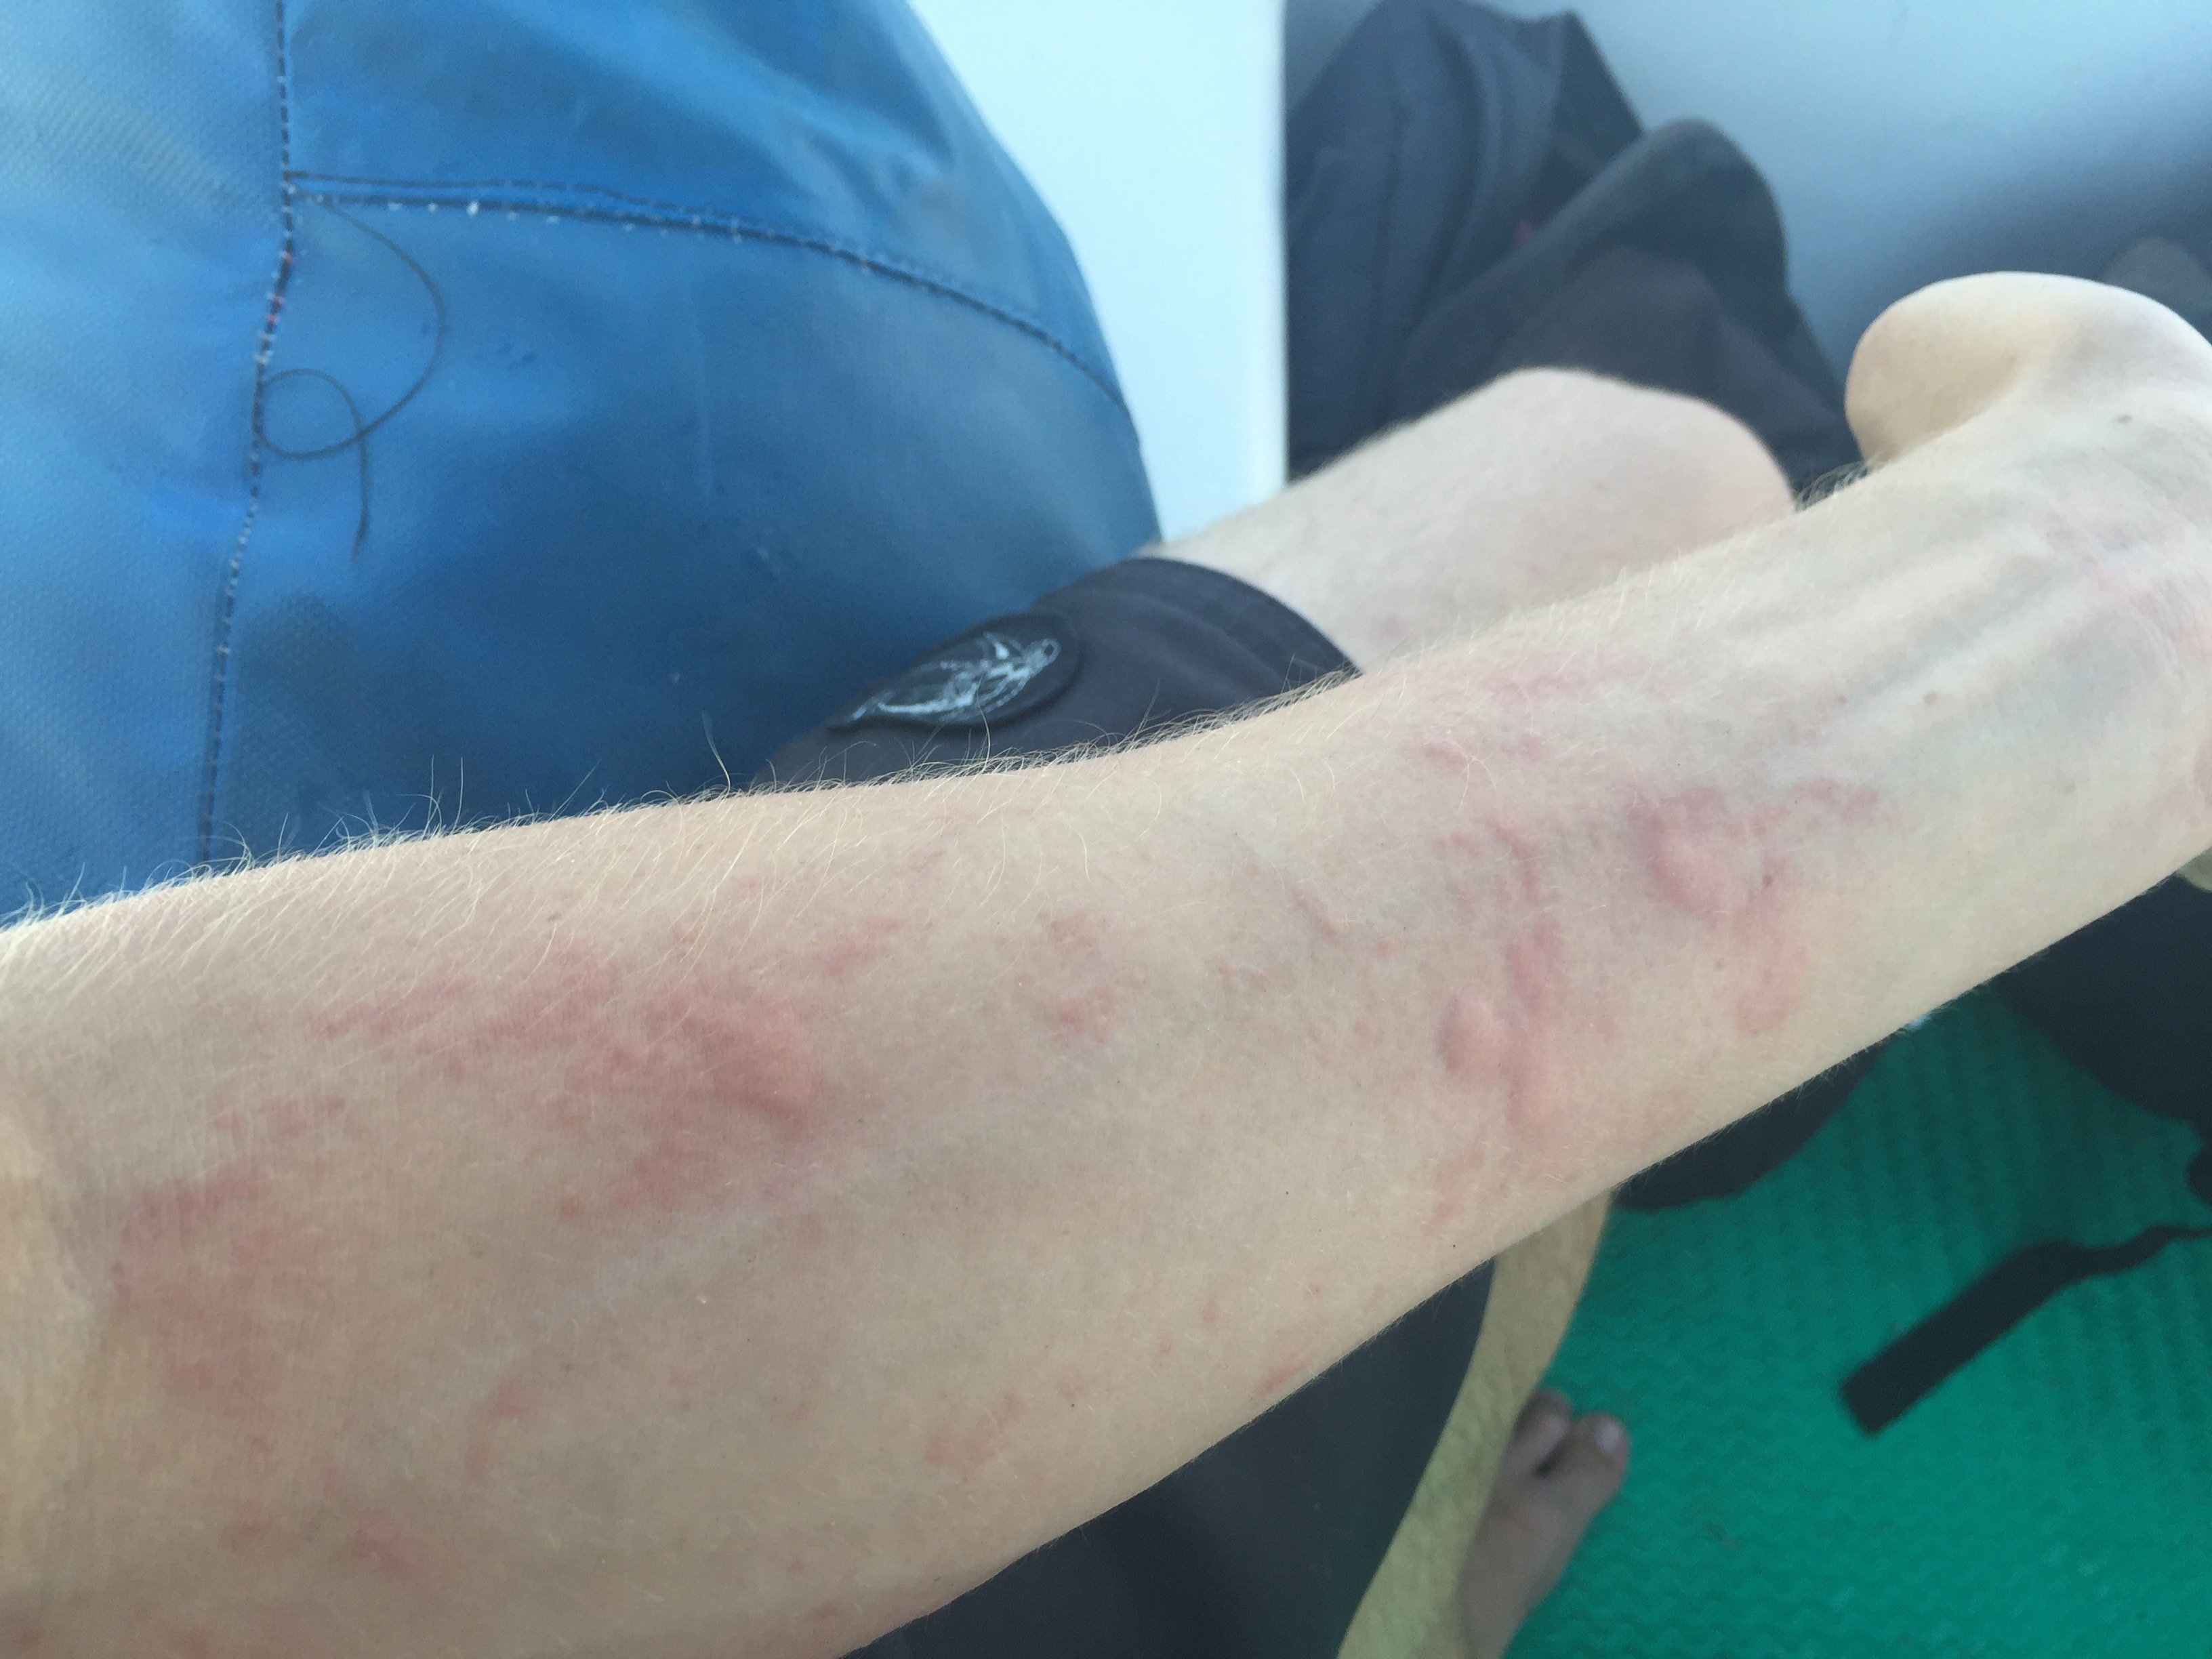 A forearm covered in jellyfish stings.